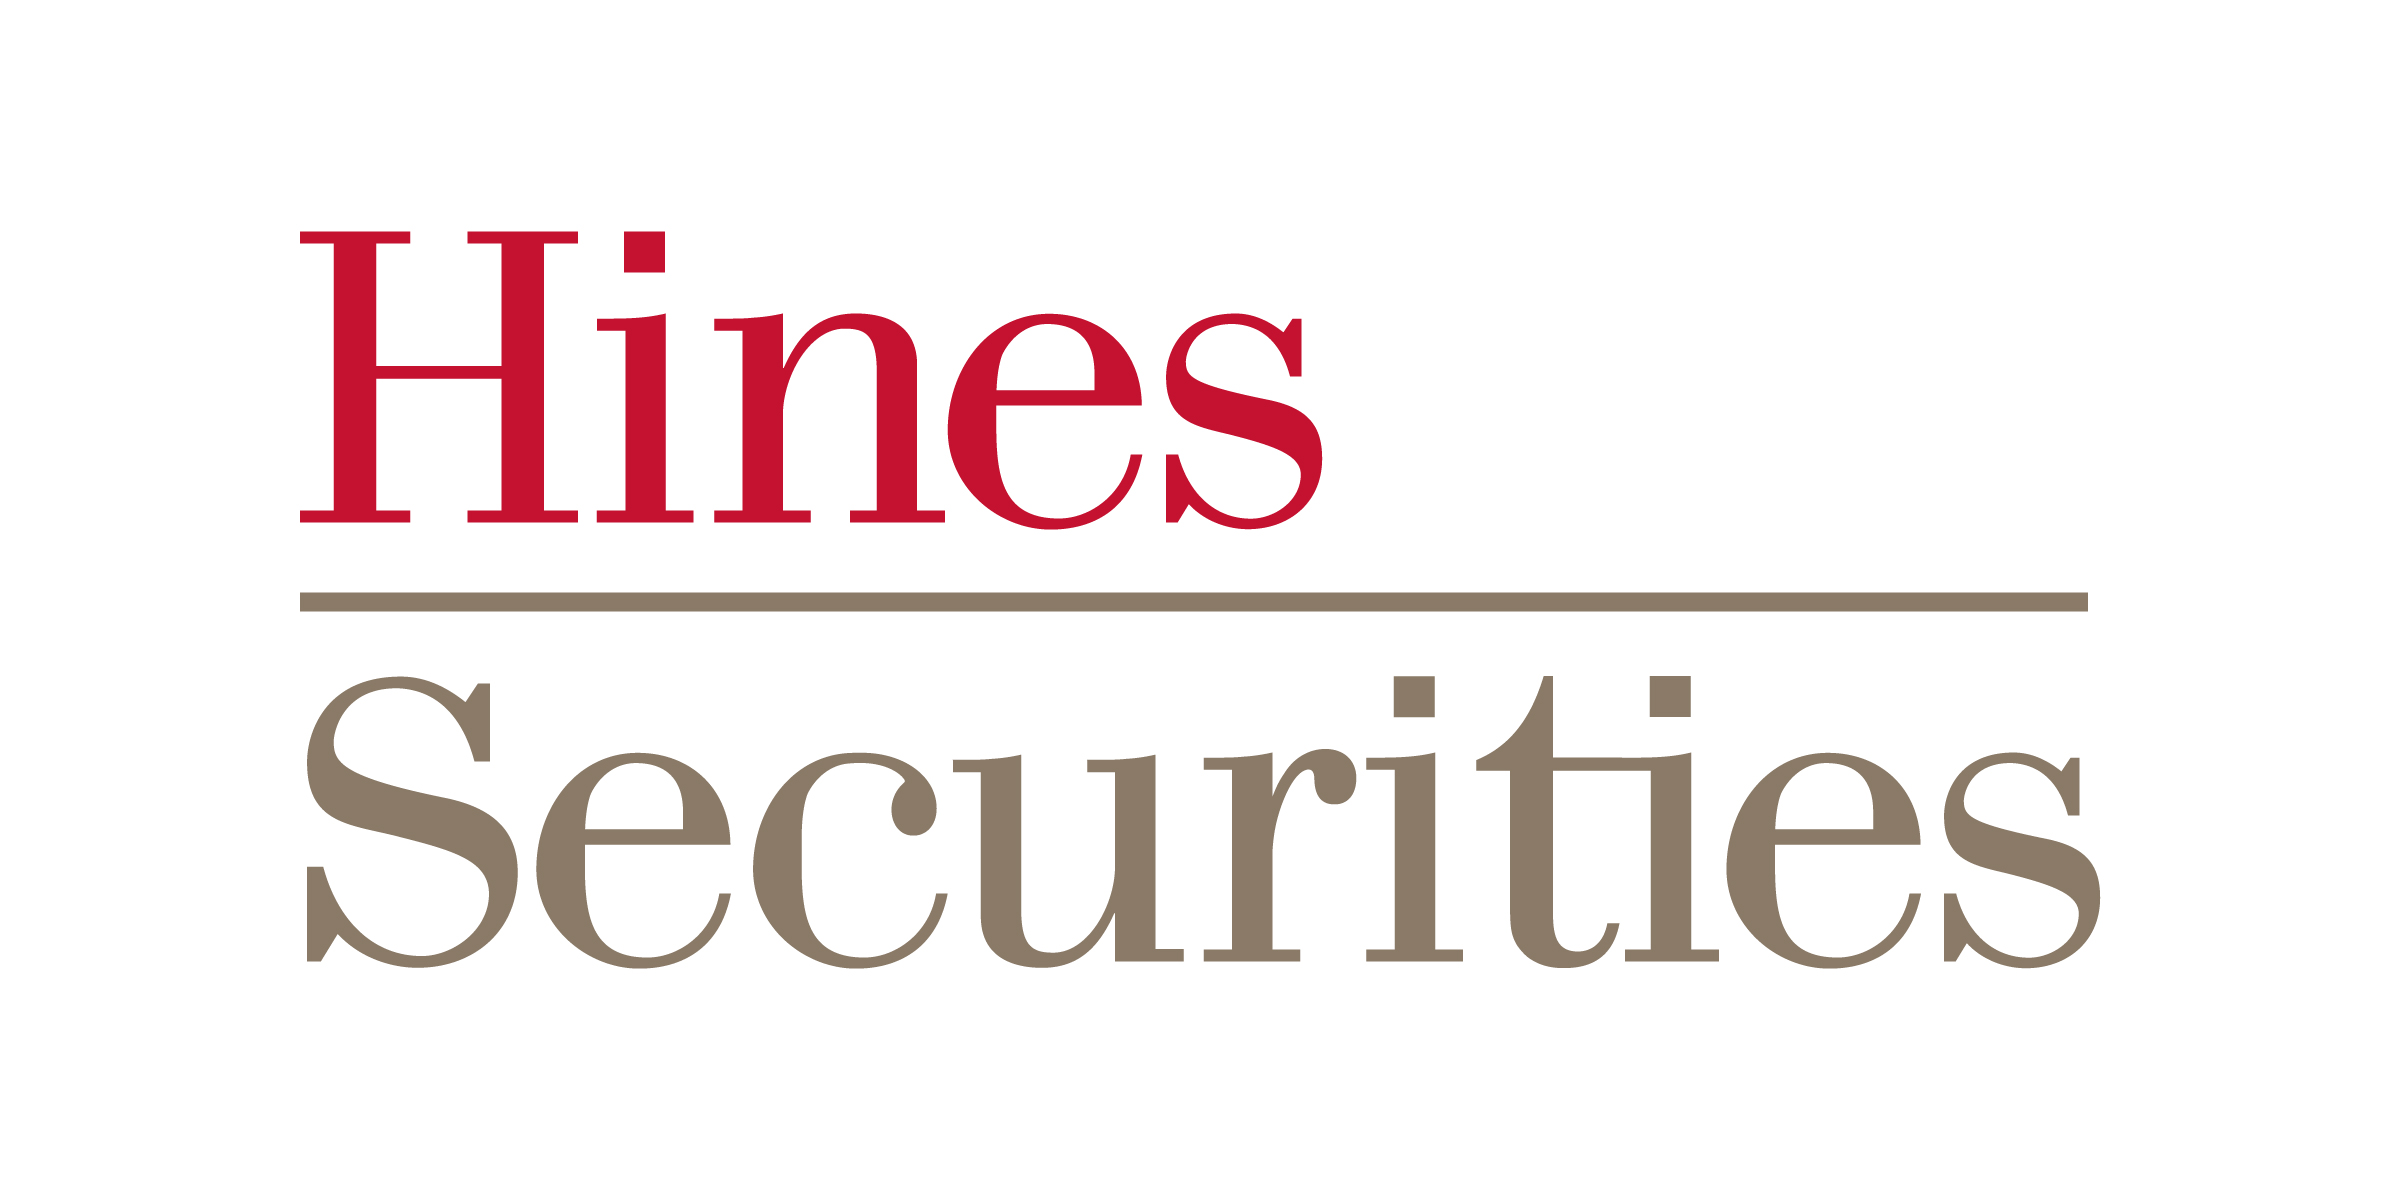 Hines Securities, Inc. logo